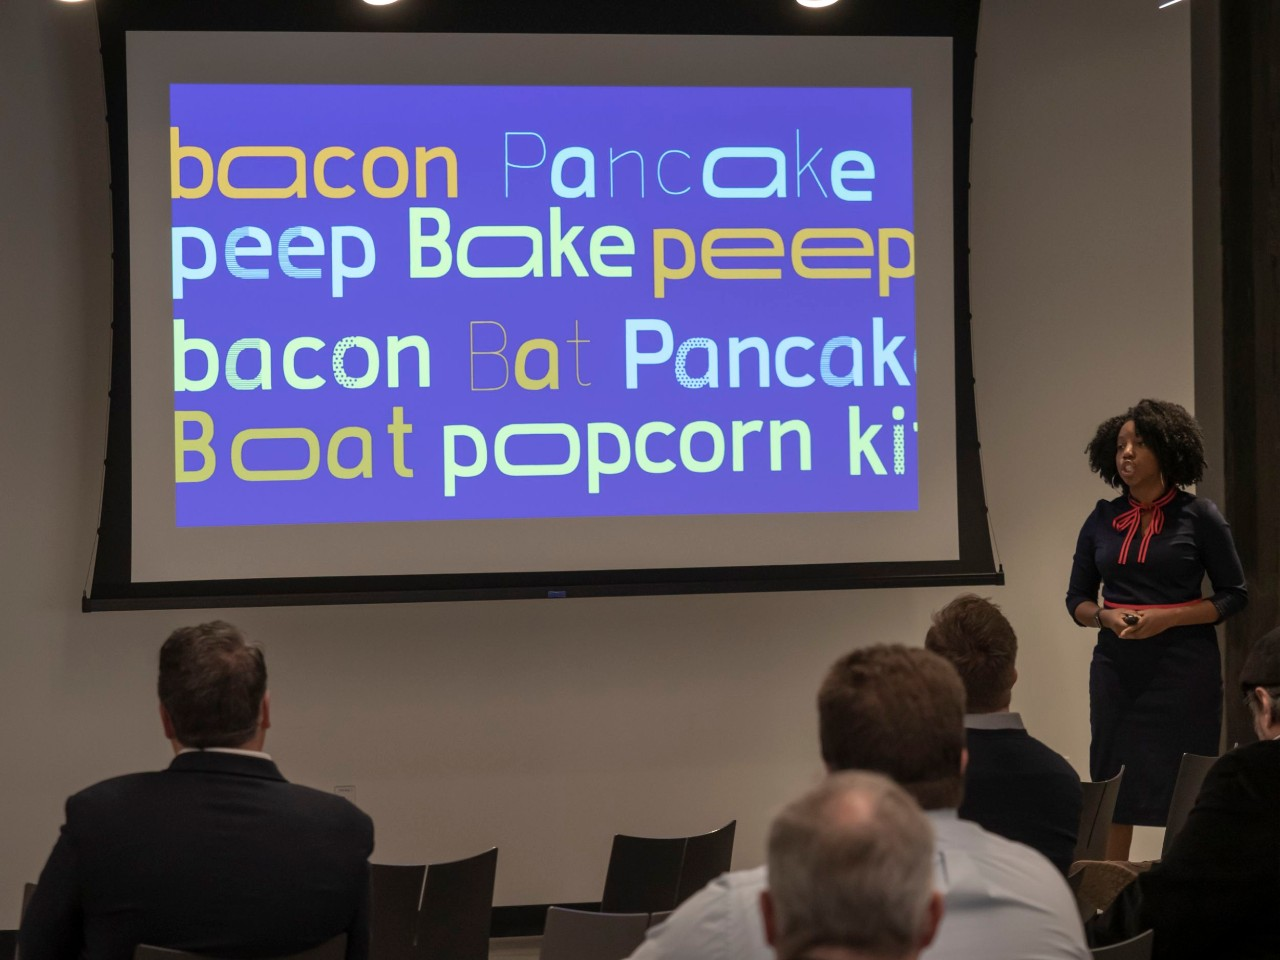 A woman speaks in front of a large video screen that displays white and yellow words on a blue screen.